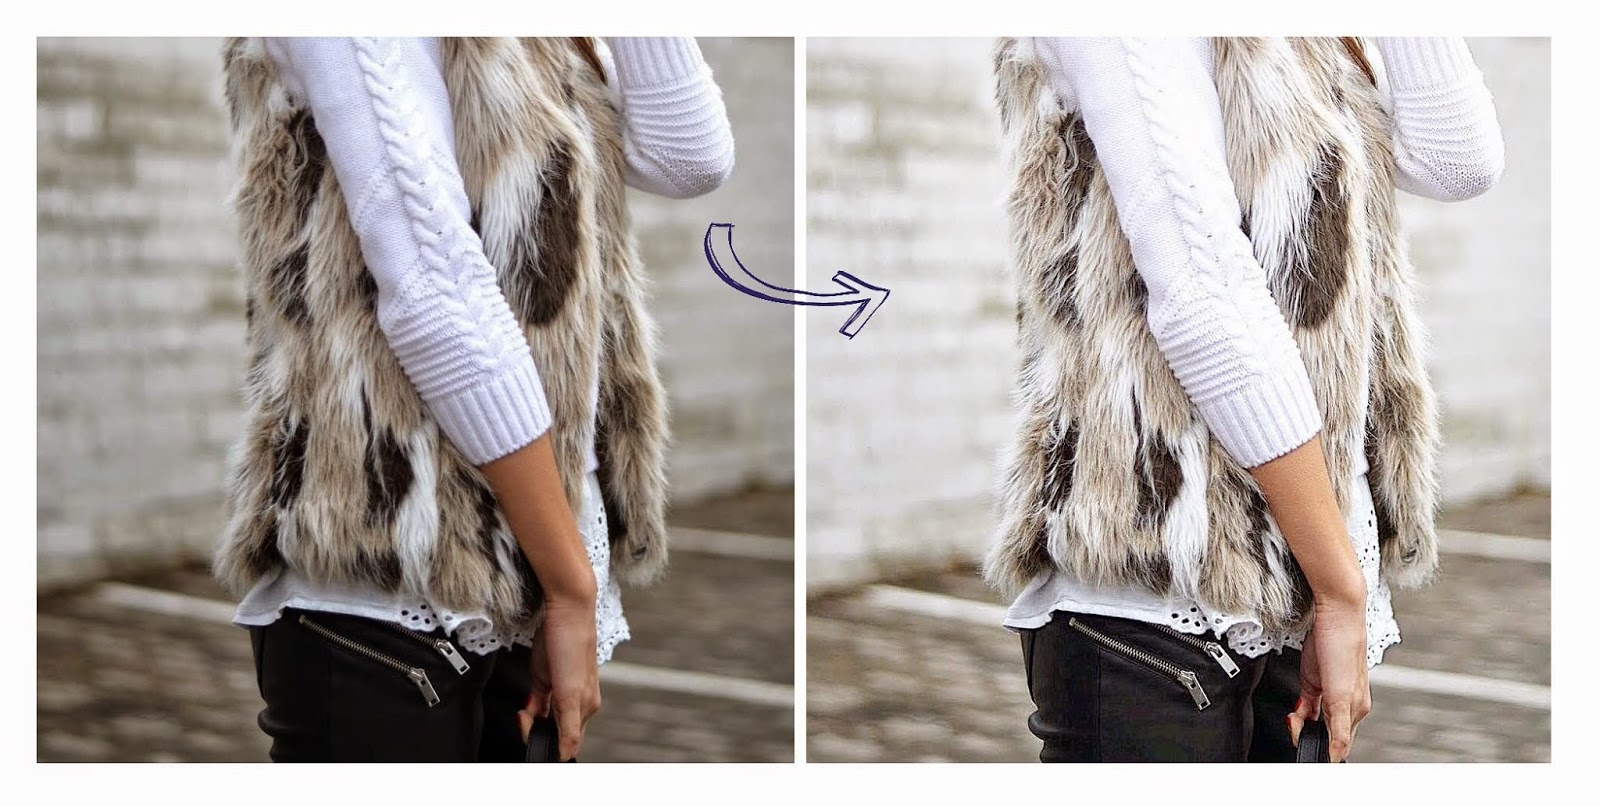 instagram-outfit-photo-detail-how-to-tutorial-tips